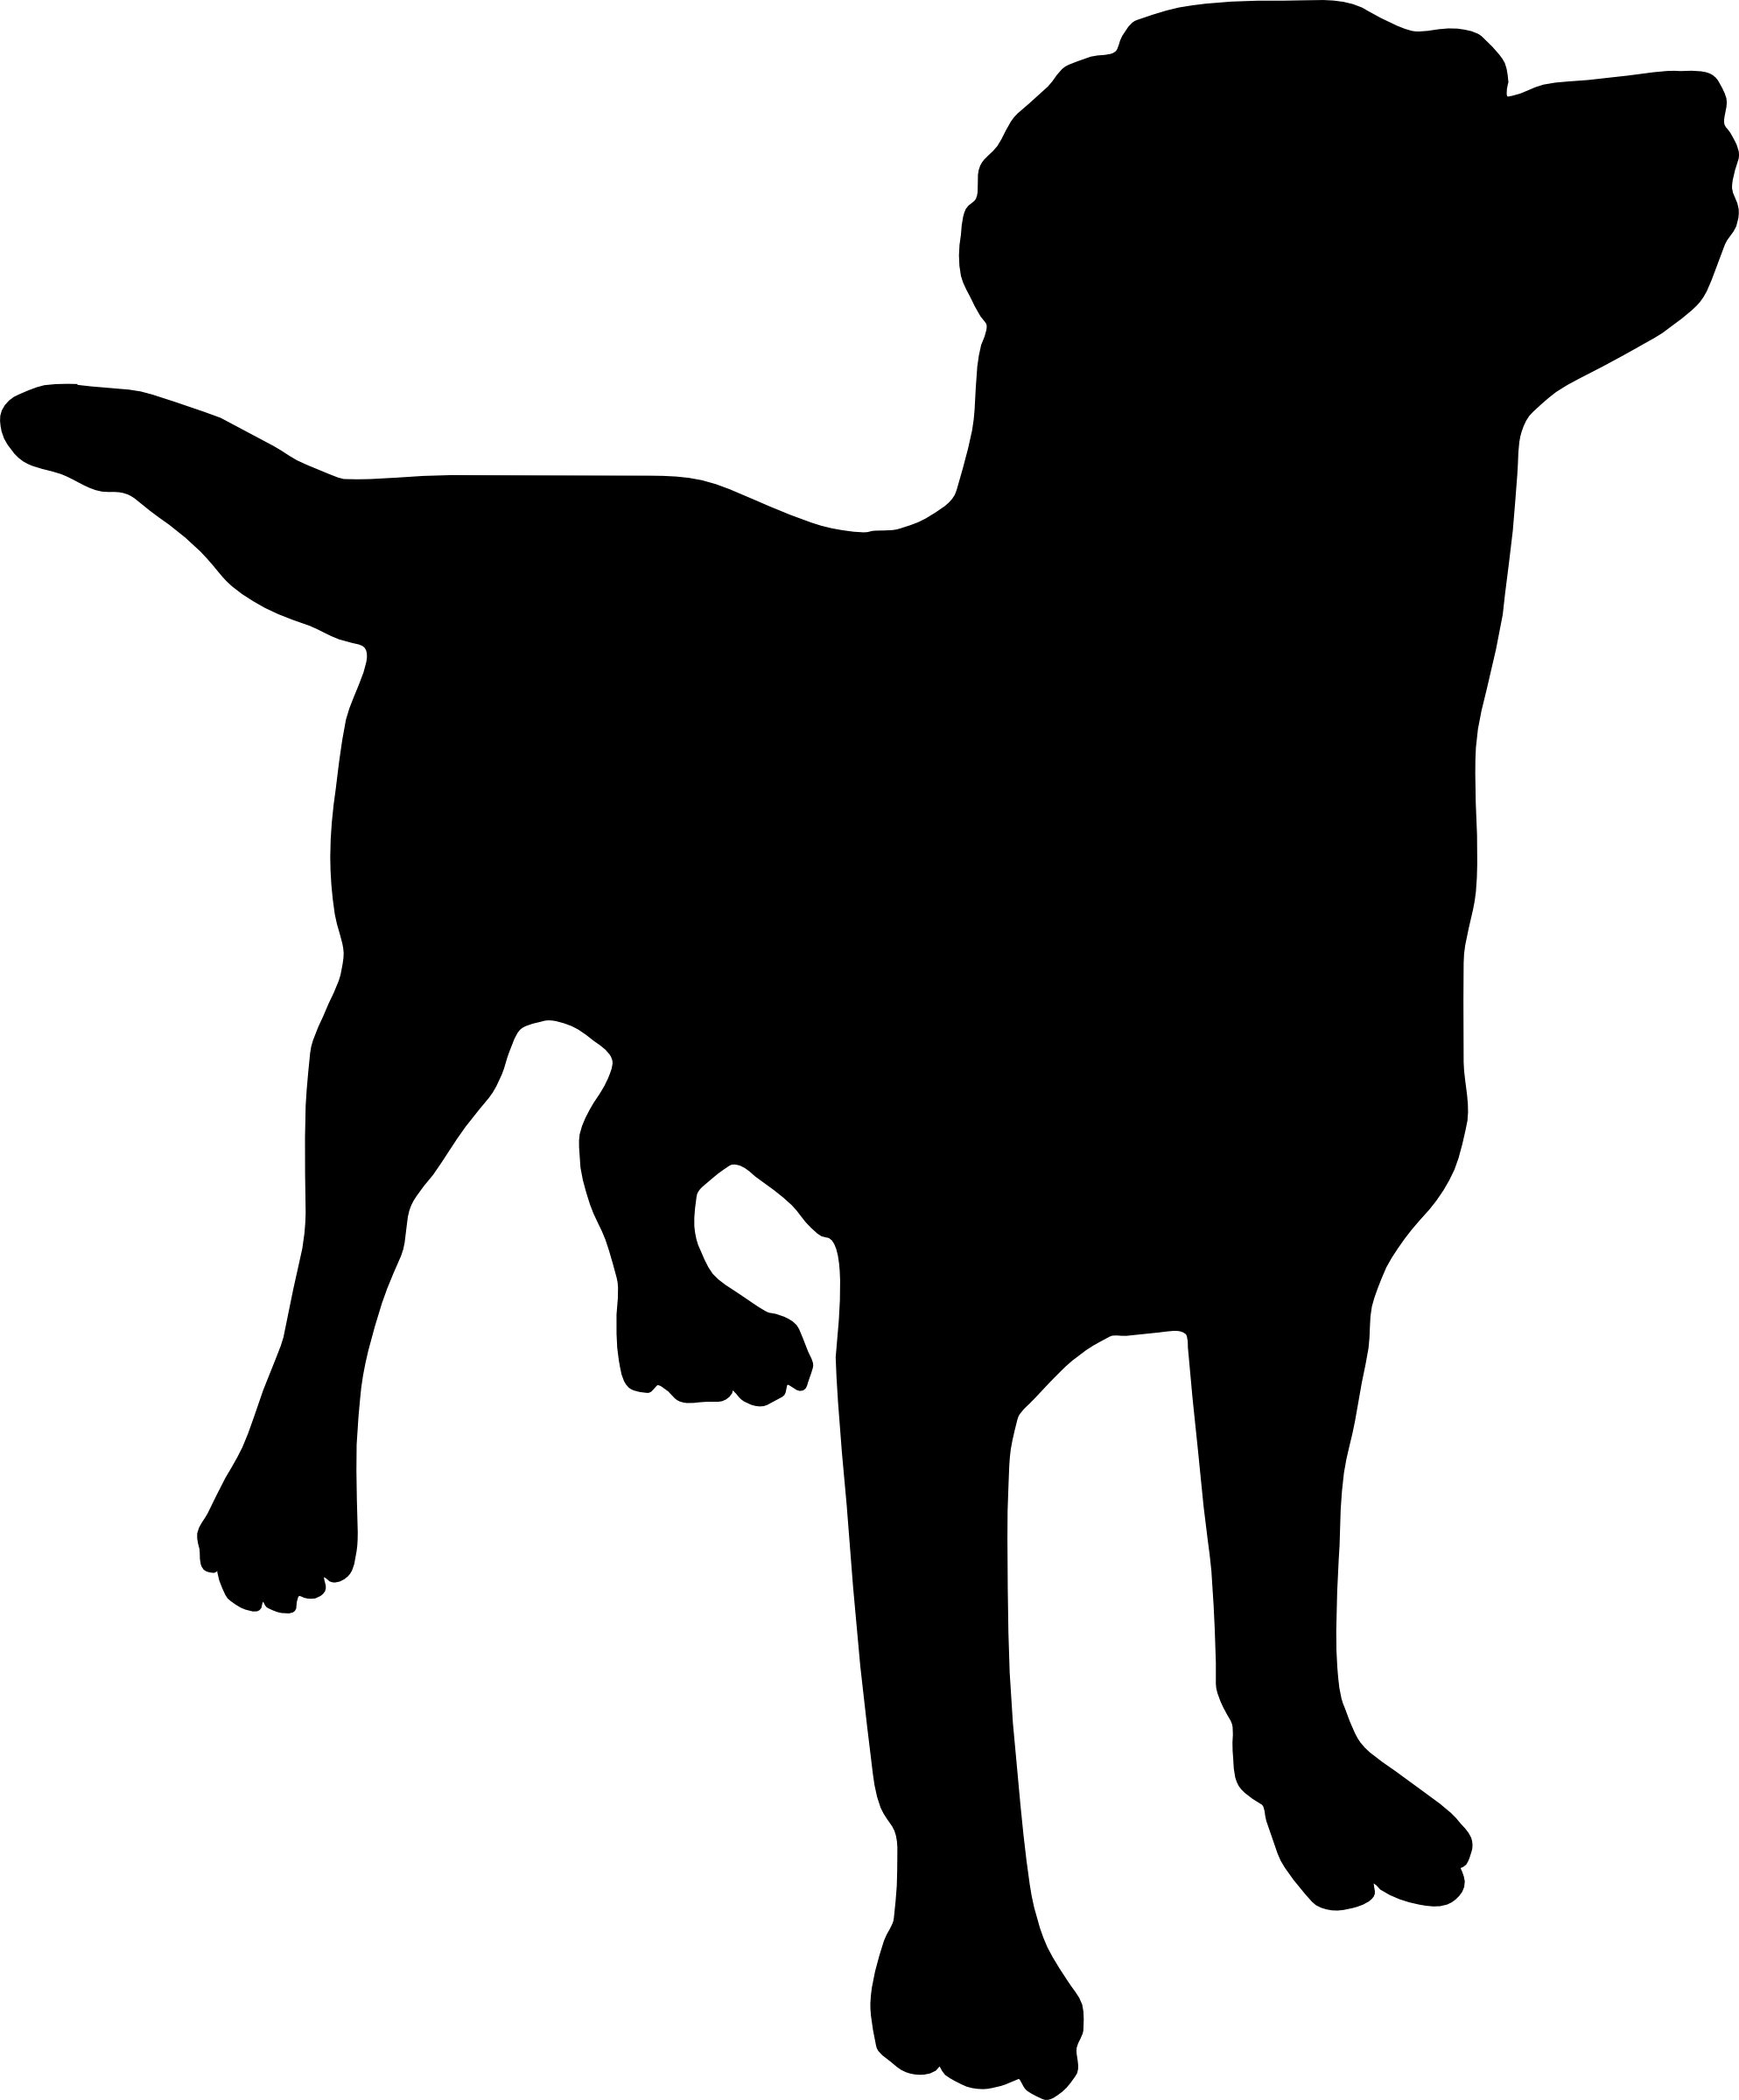 Dog cat clipart black and white graphic transparent stock Dog Cat Silhouette at GetDrawings.com | Free for personal use Dog ... graphic transparent stock